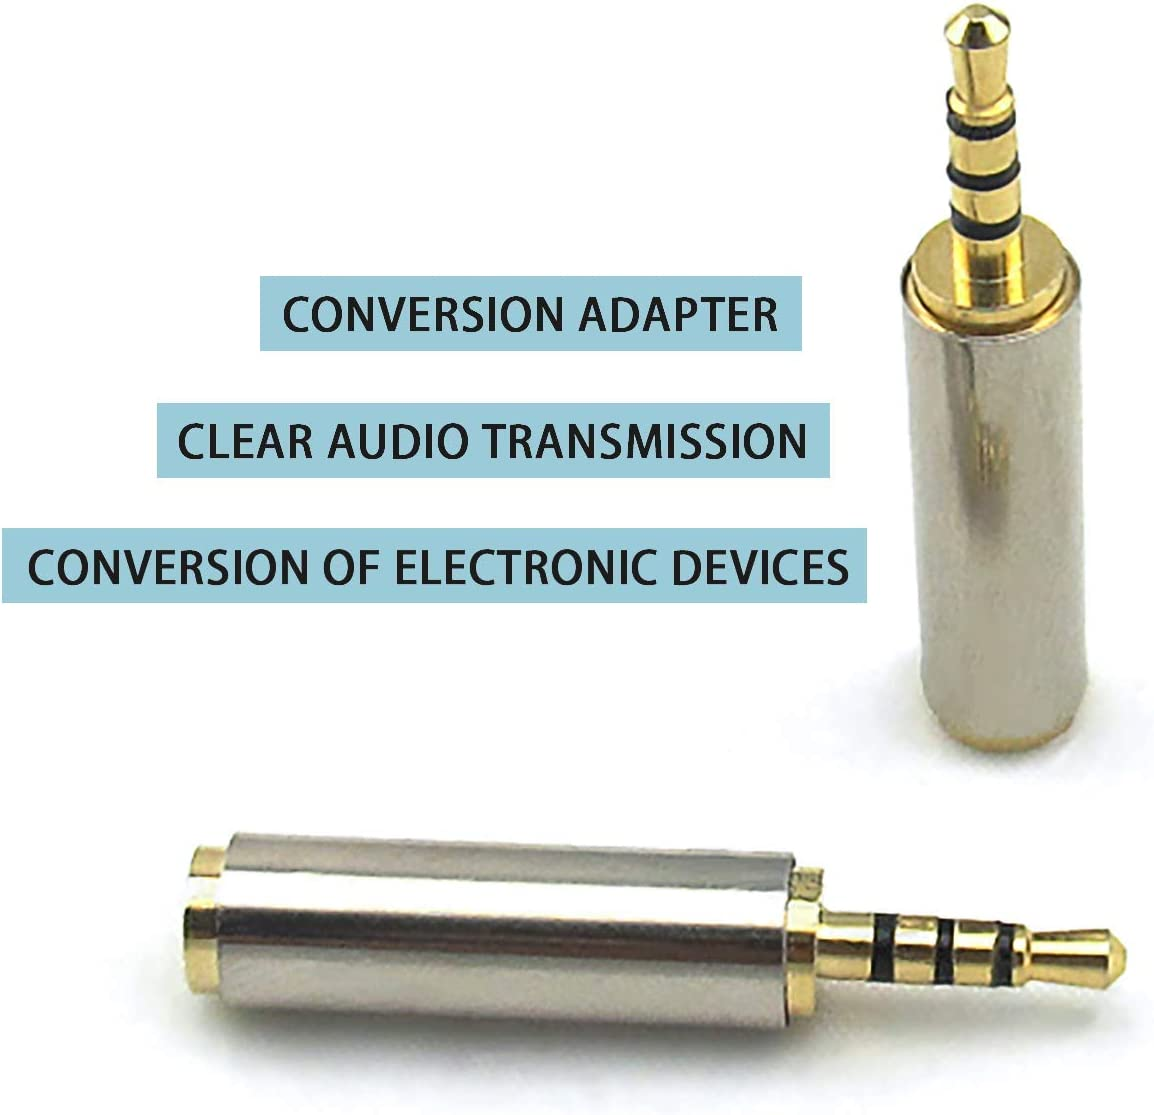 Adapter Silver Gray 2.5mm Male to 3.5mm Female 3 Ring 4-Pole Jack Audio Adapter Converter for Headphone Earphone Headset